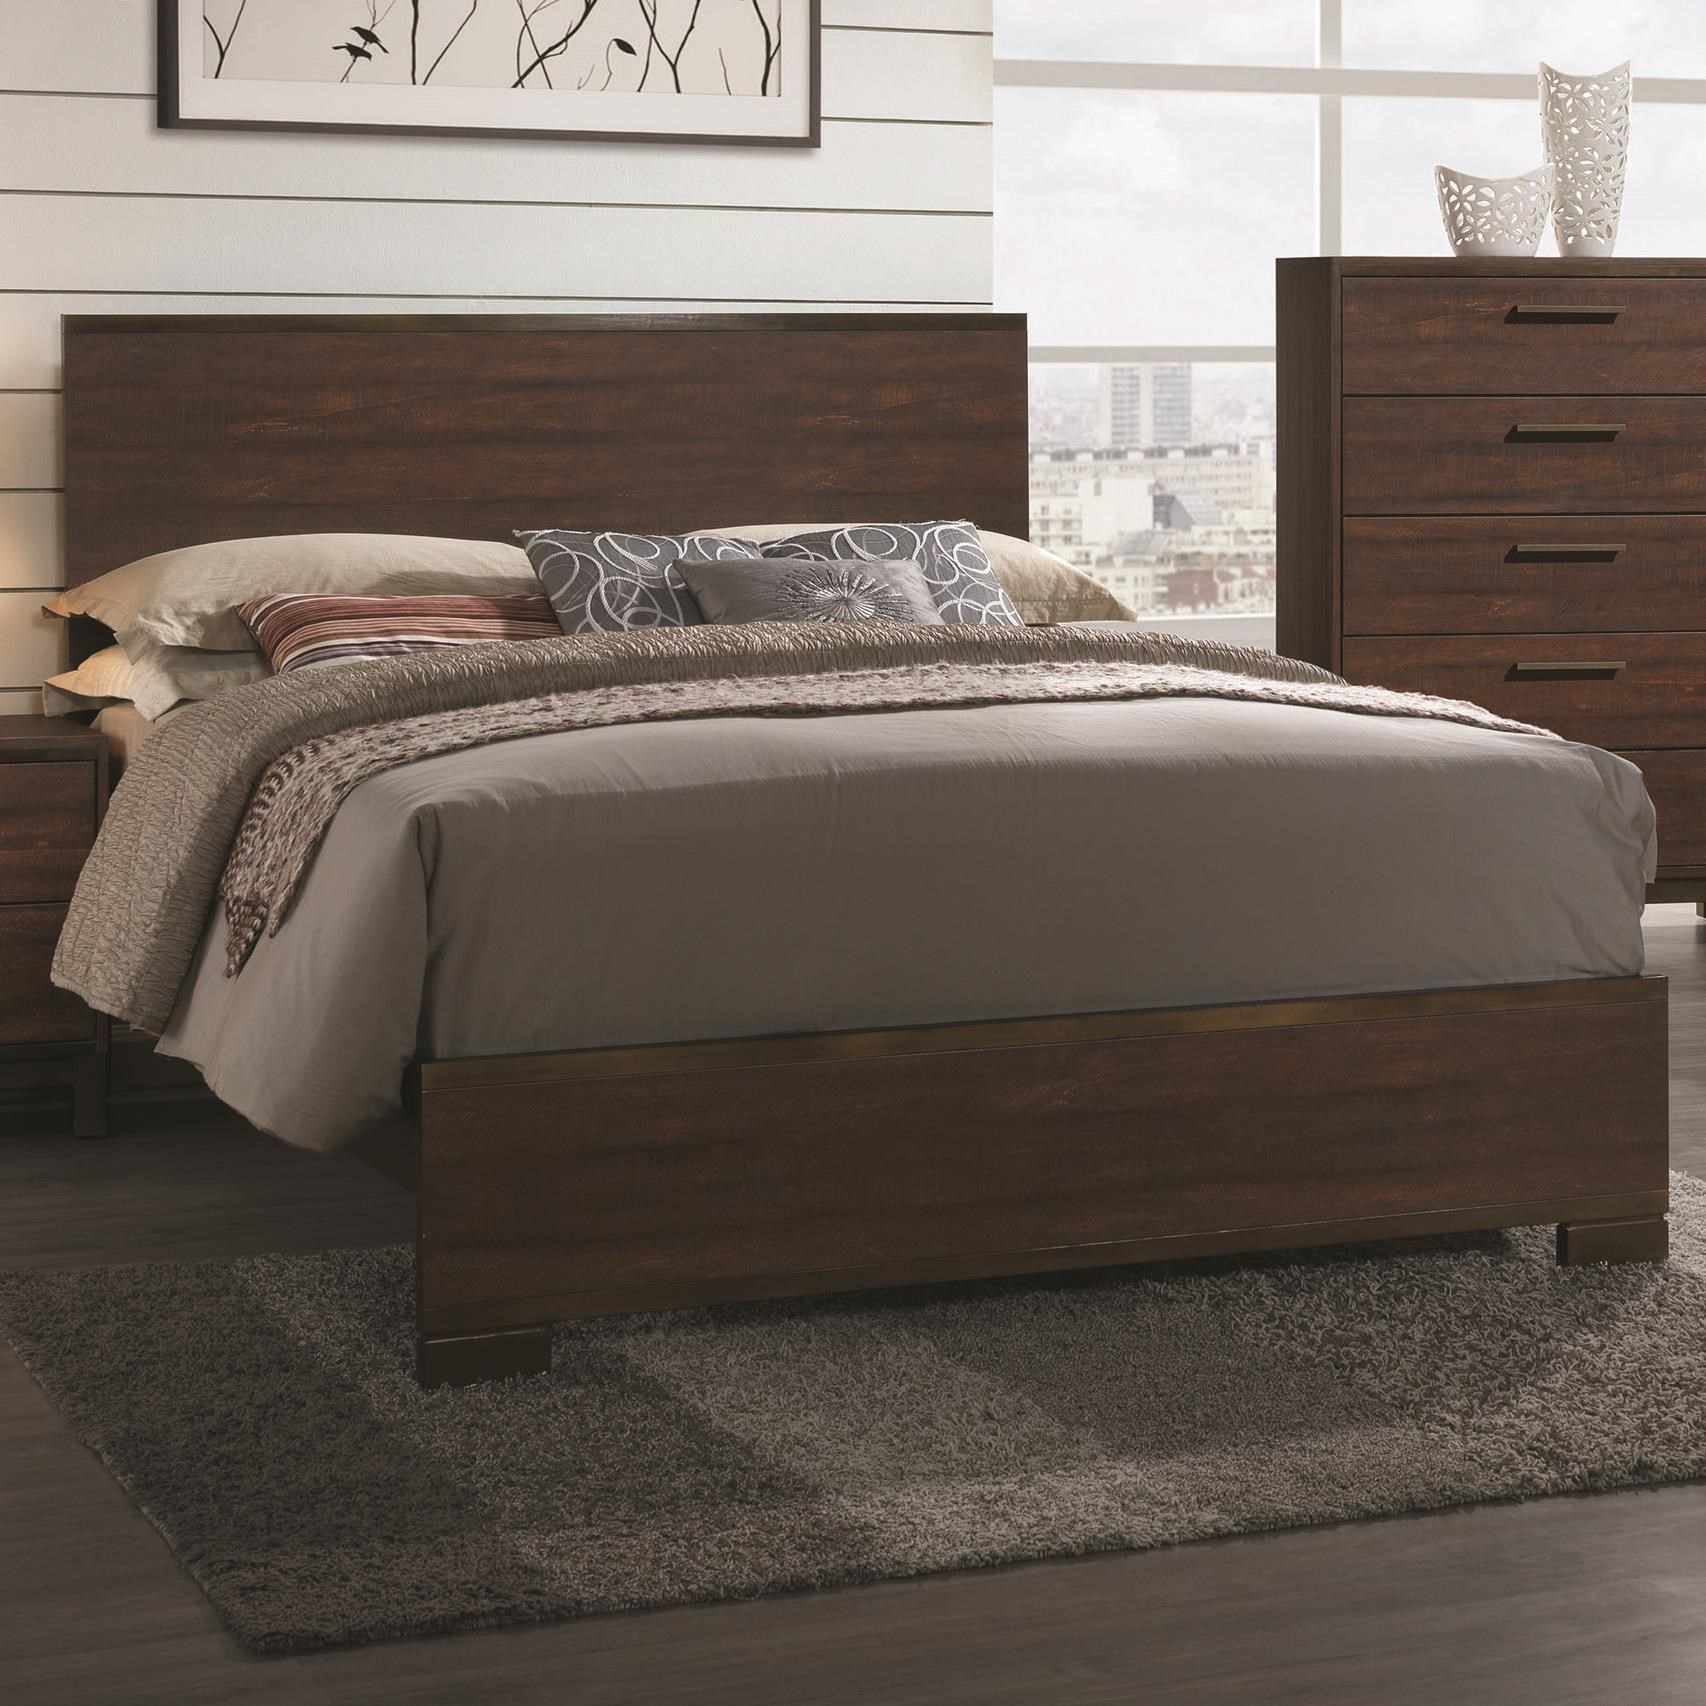 eastern king bed Edmonton Eastern King Bed with Wood Headboard by Coaster